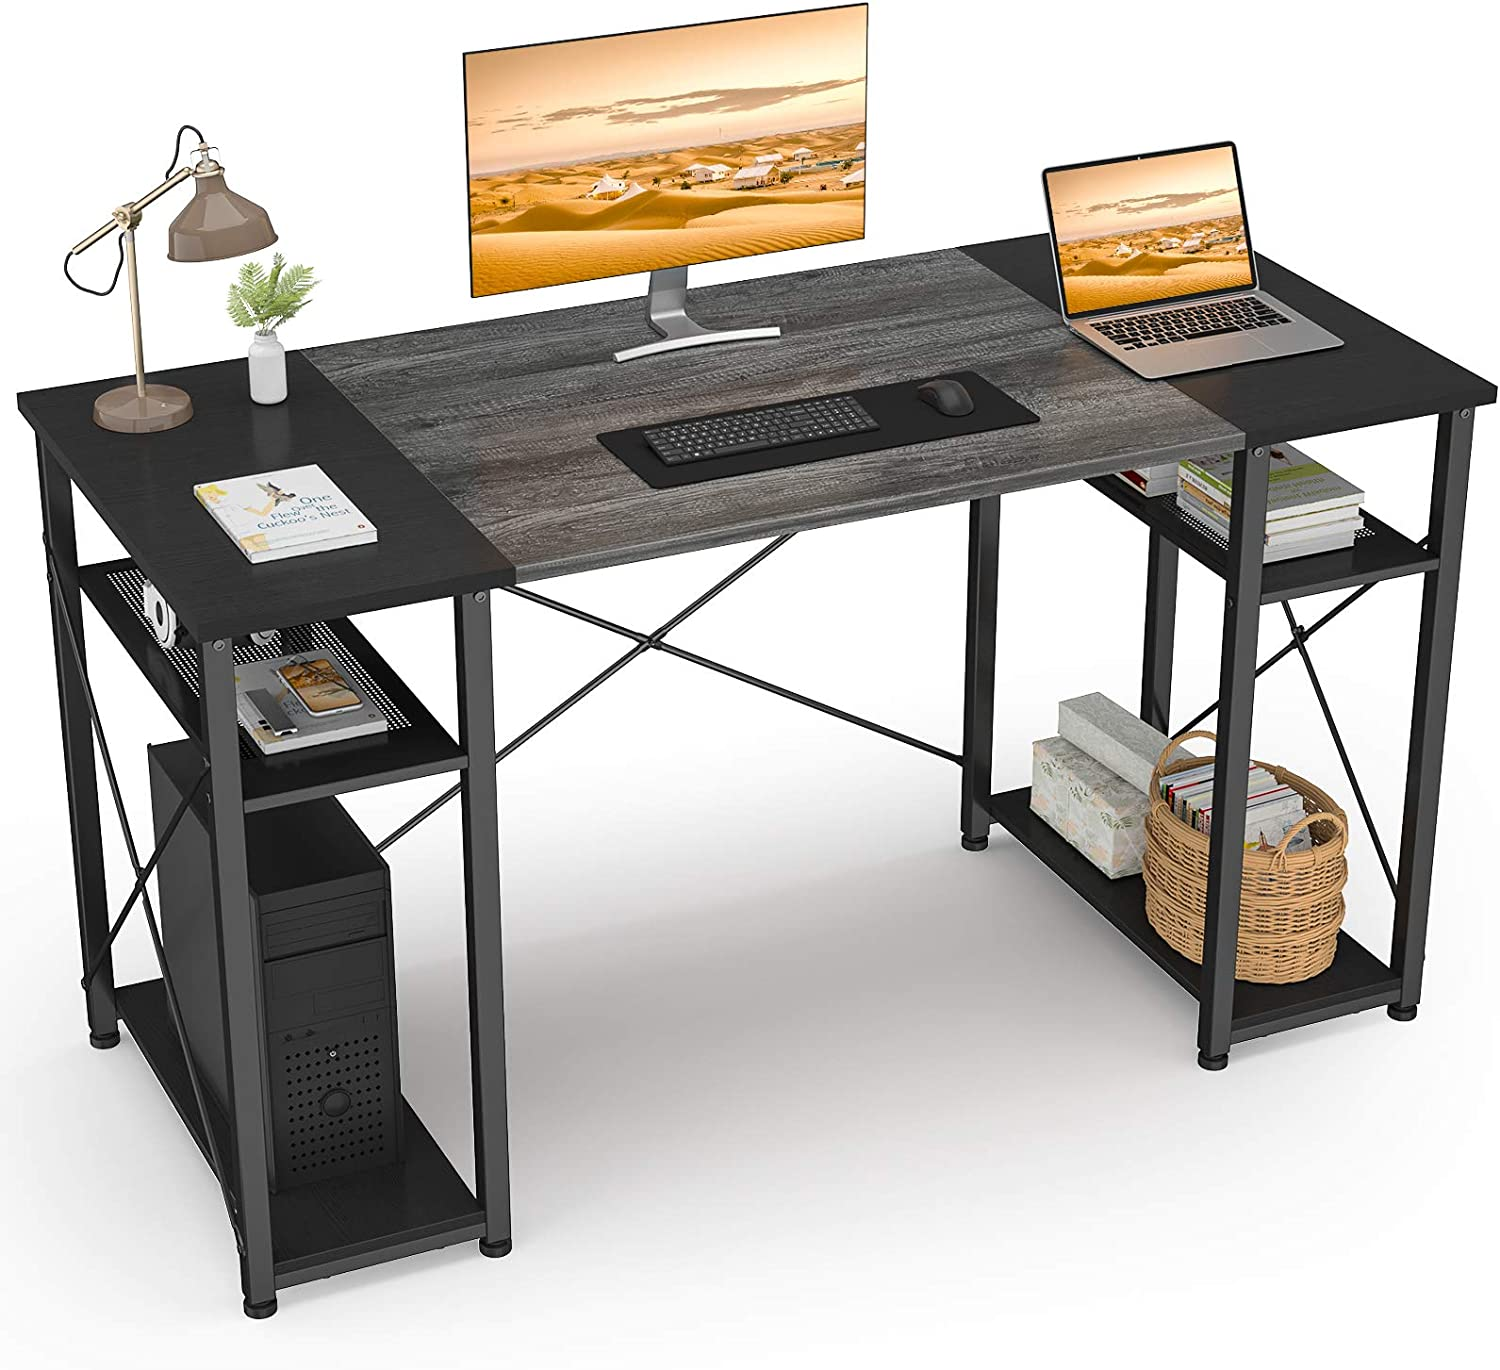 47 Inch Computer Desk with Shelves, Ecoprsio Home Office Desk Small Study Writing Table, Sturdy Modern Table Simple Laptop PC Desk with Splice Board, Oak and Black